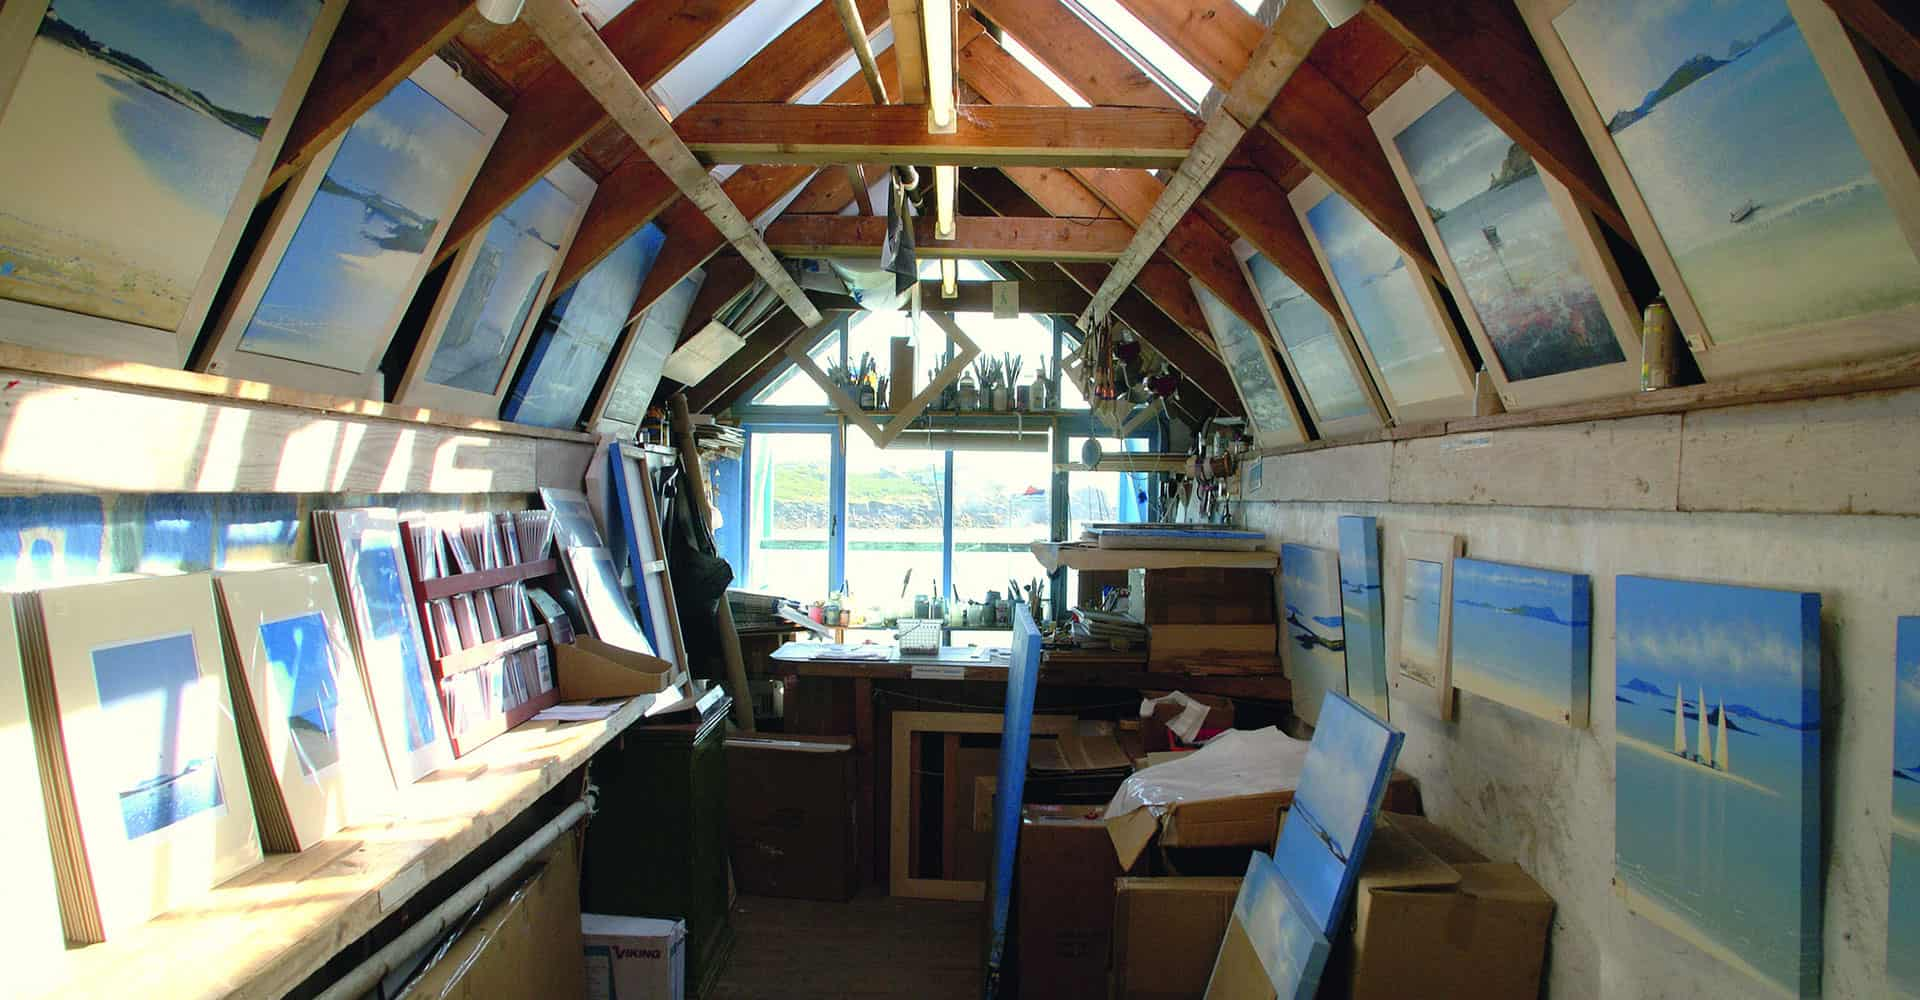 Visit Art Galleries  - Day Trip Ideas to the Isles of Scilly